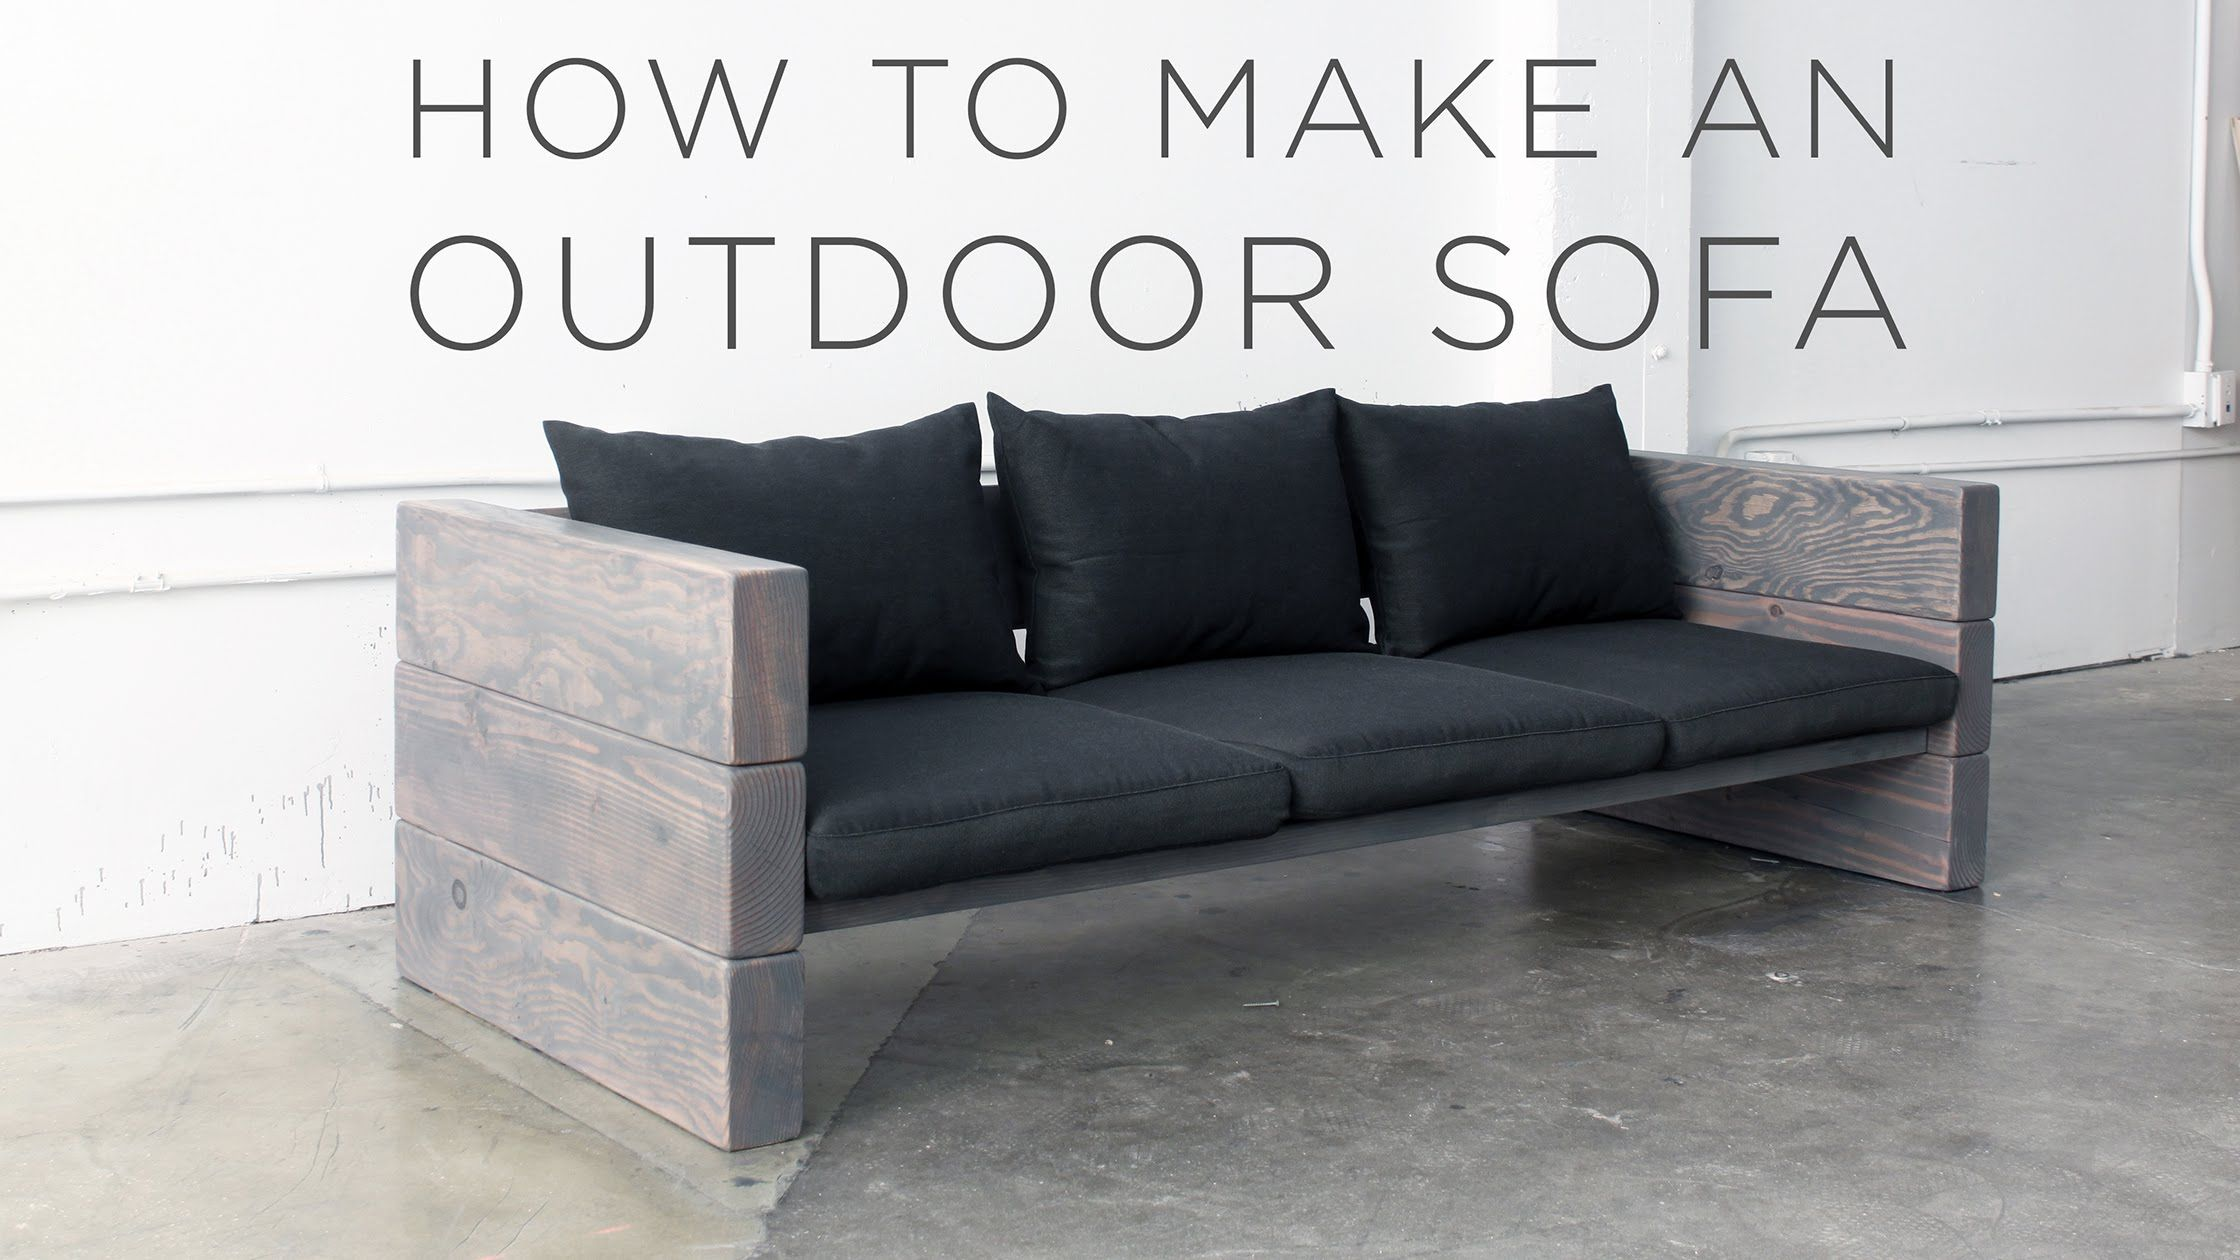 This DIY Sofa Can Be Made With Basic Power Tools In Less Than 5 Hours.  Homemade Outdoor FurnitureHomemade ...